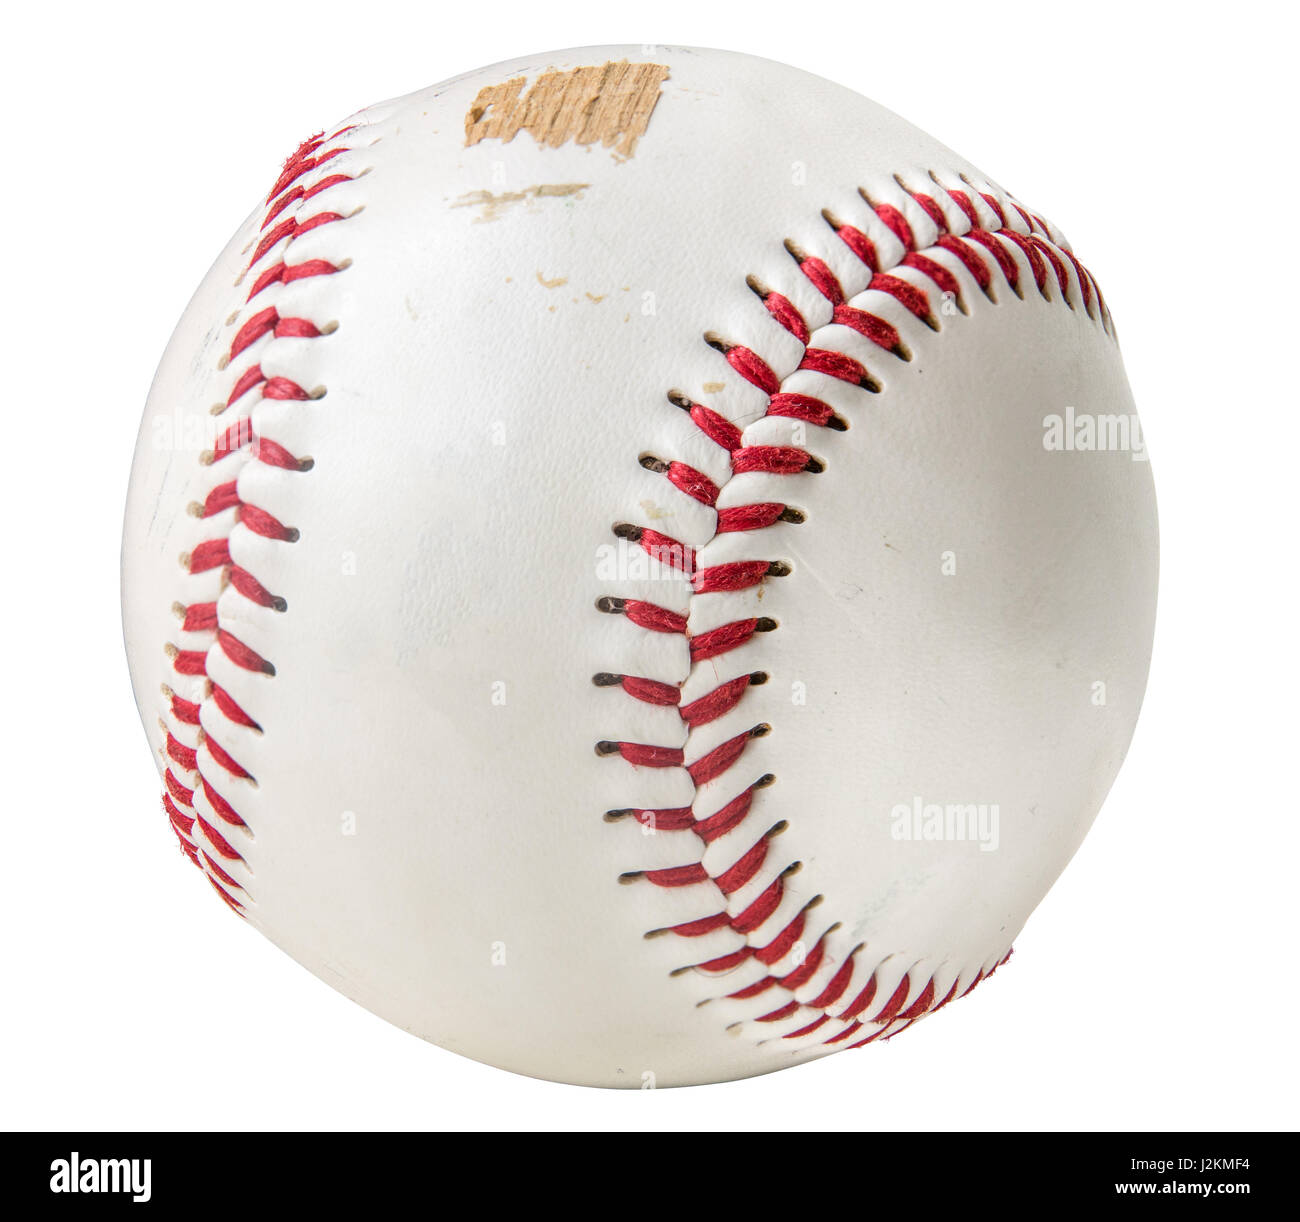 Isolated Grungy Scuffed Baseball On A White Background - Stock Image